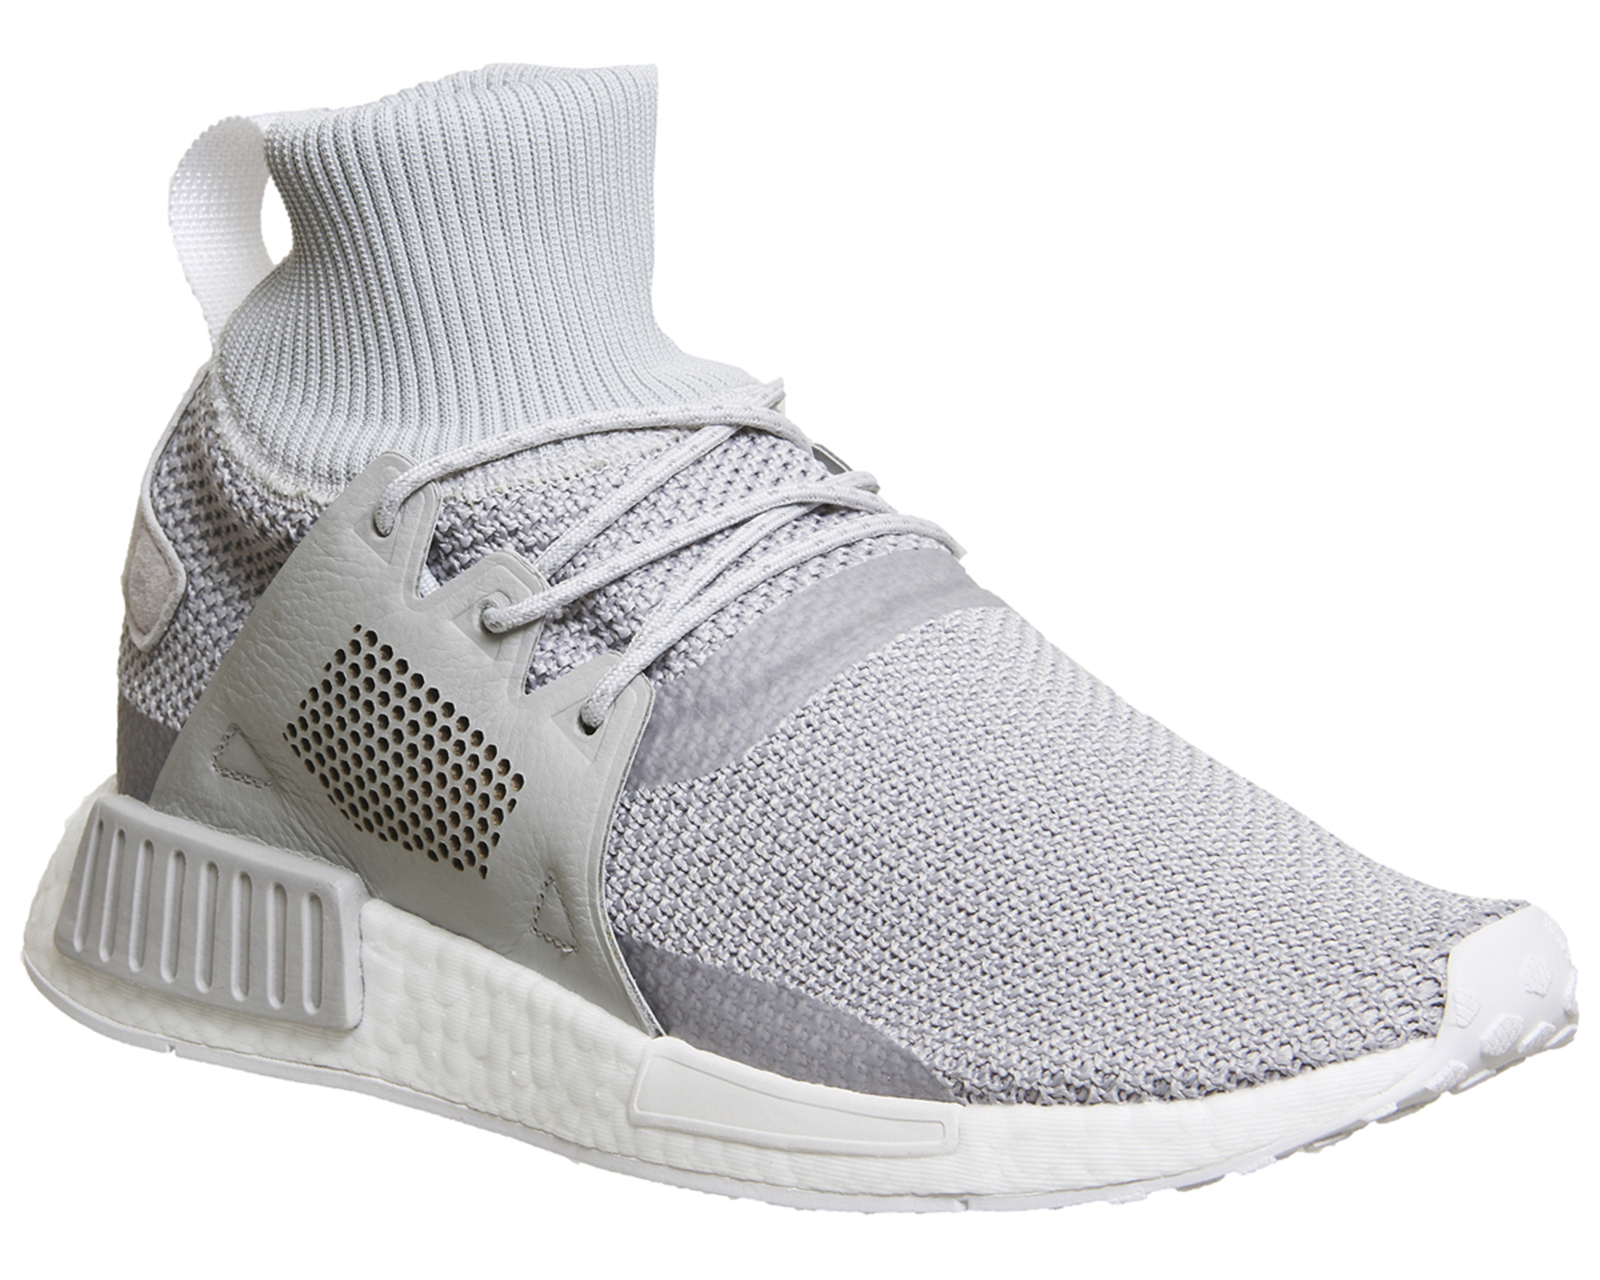 b0ca573d1 Sentinel Adidas Nmd Zr1 Winter Grey Two White Trainers Shoes